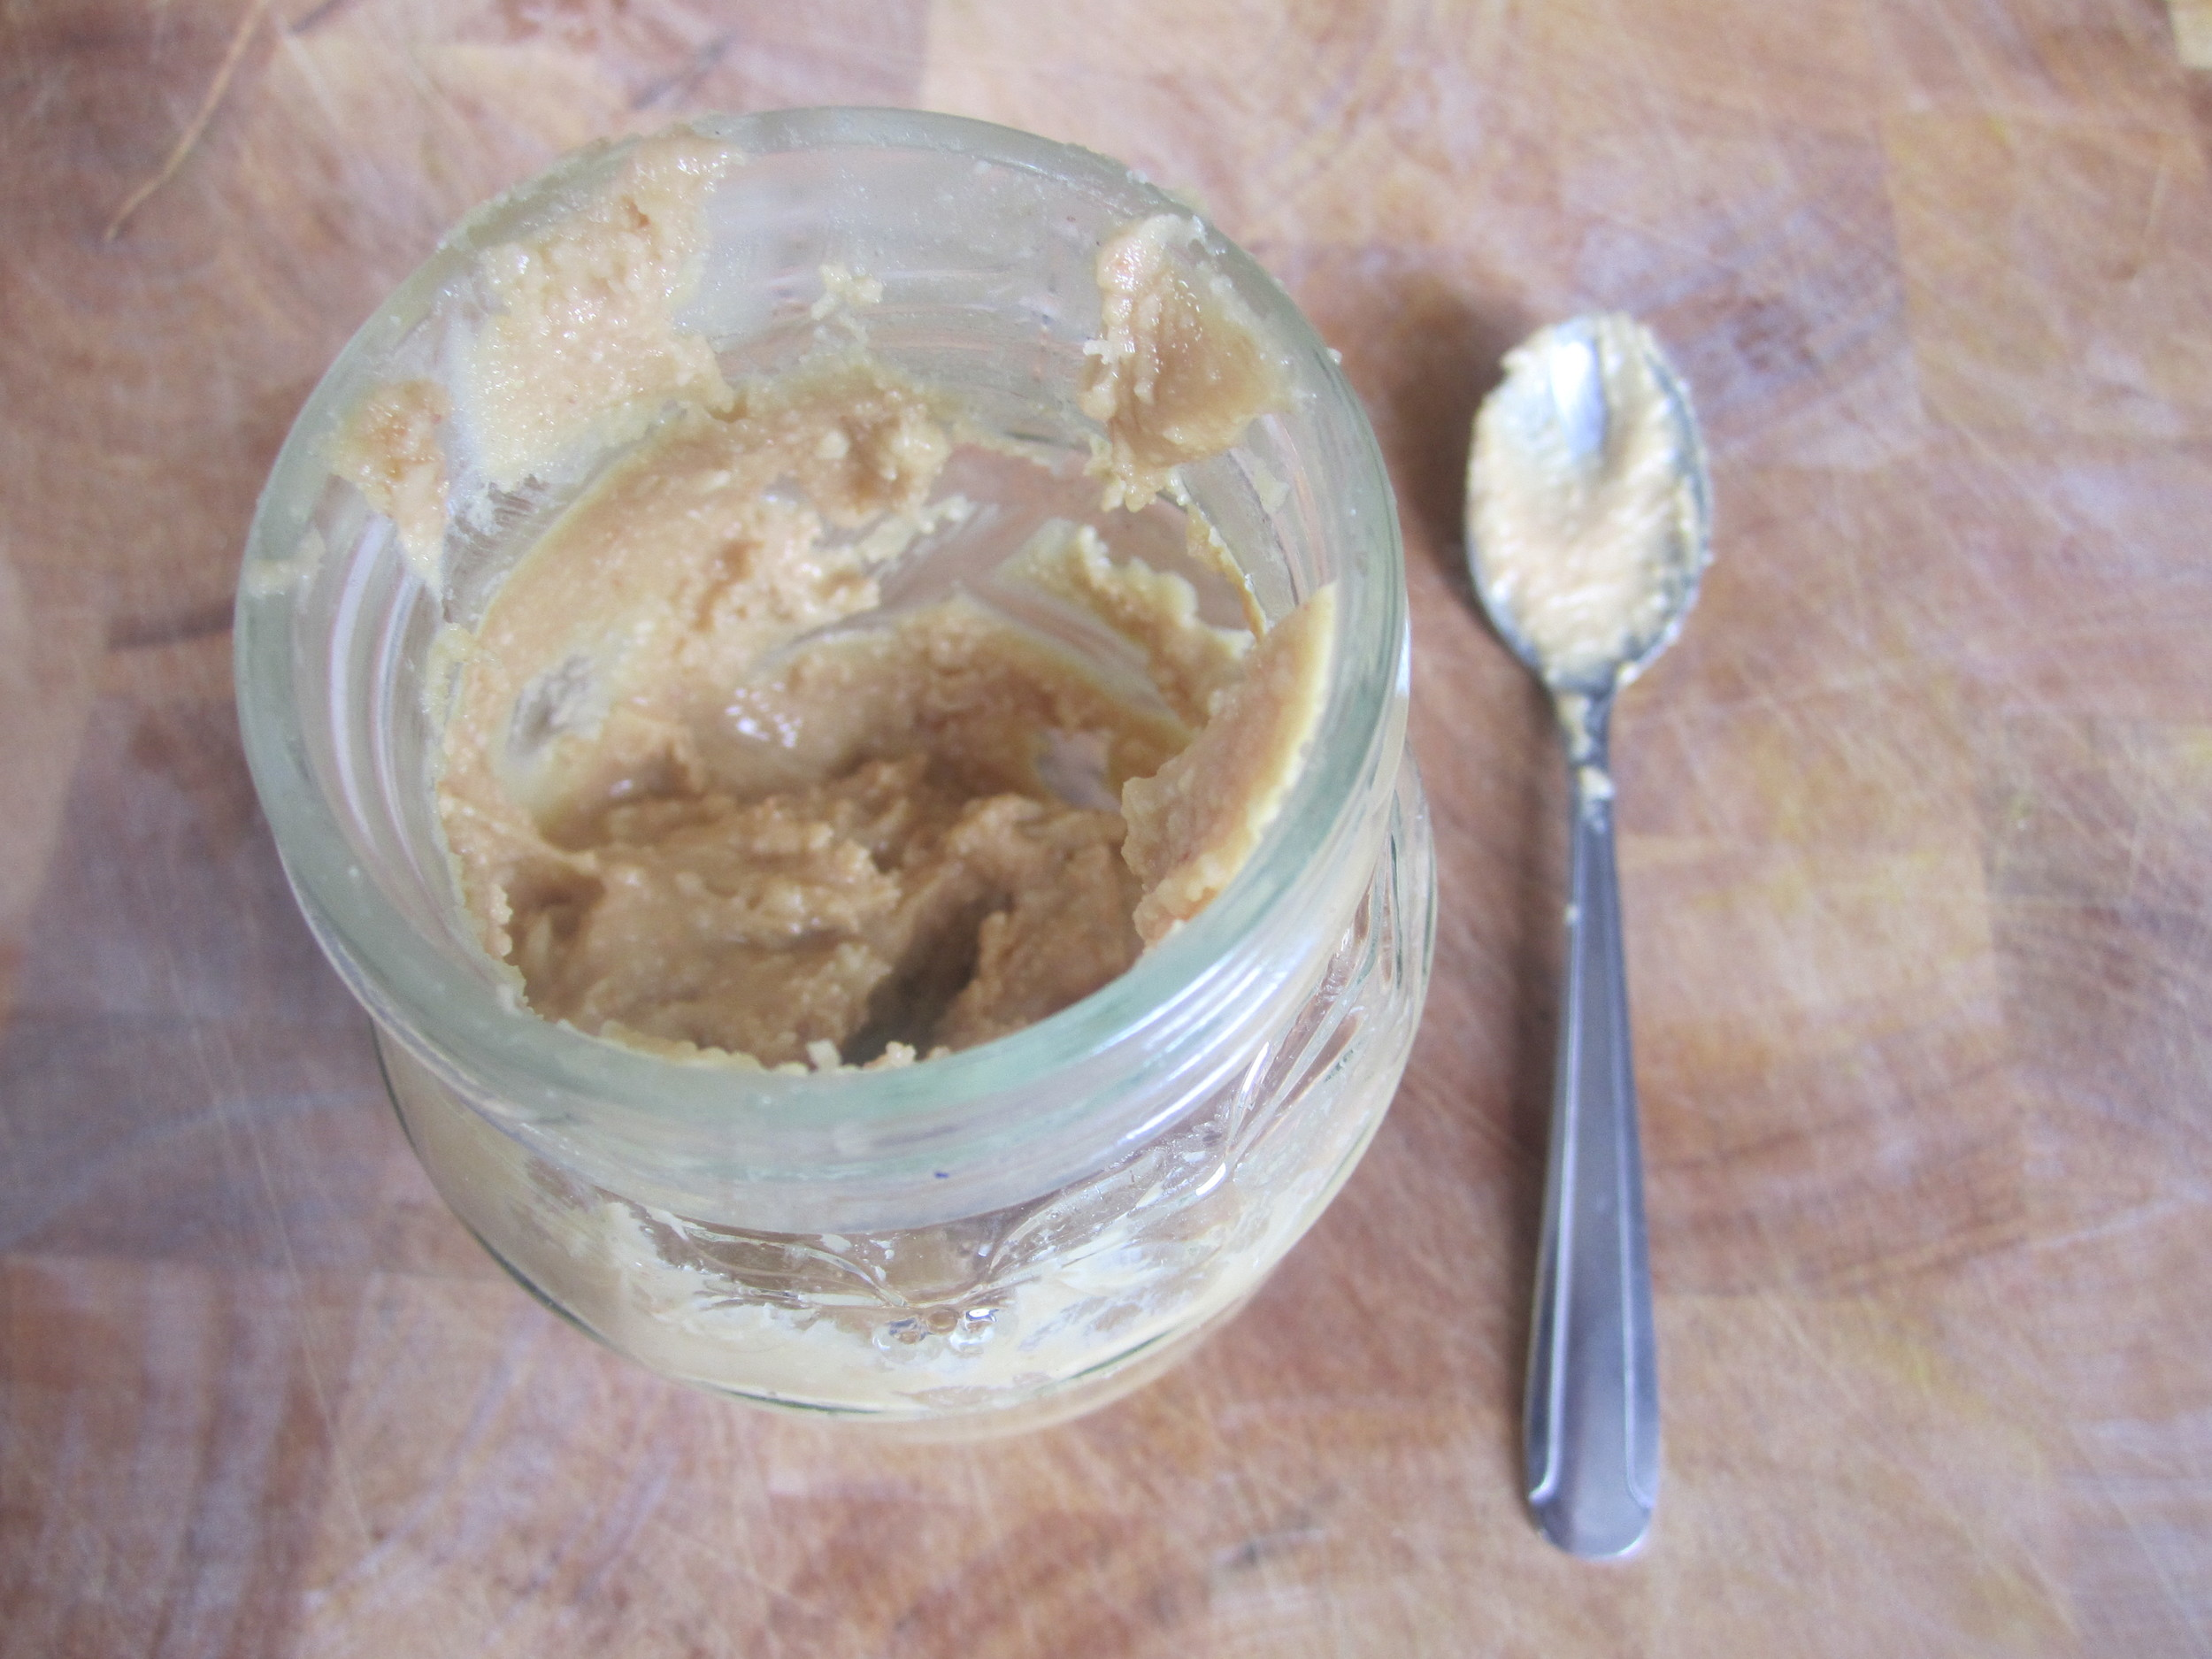 Nut butter - easy to make and so much nicer.